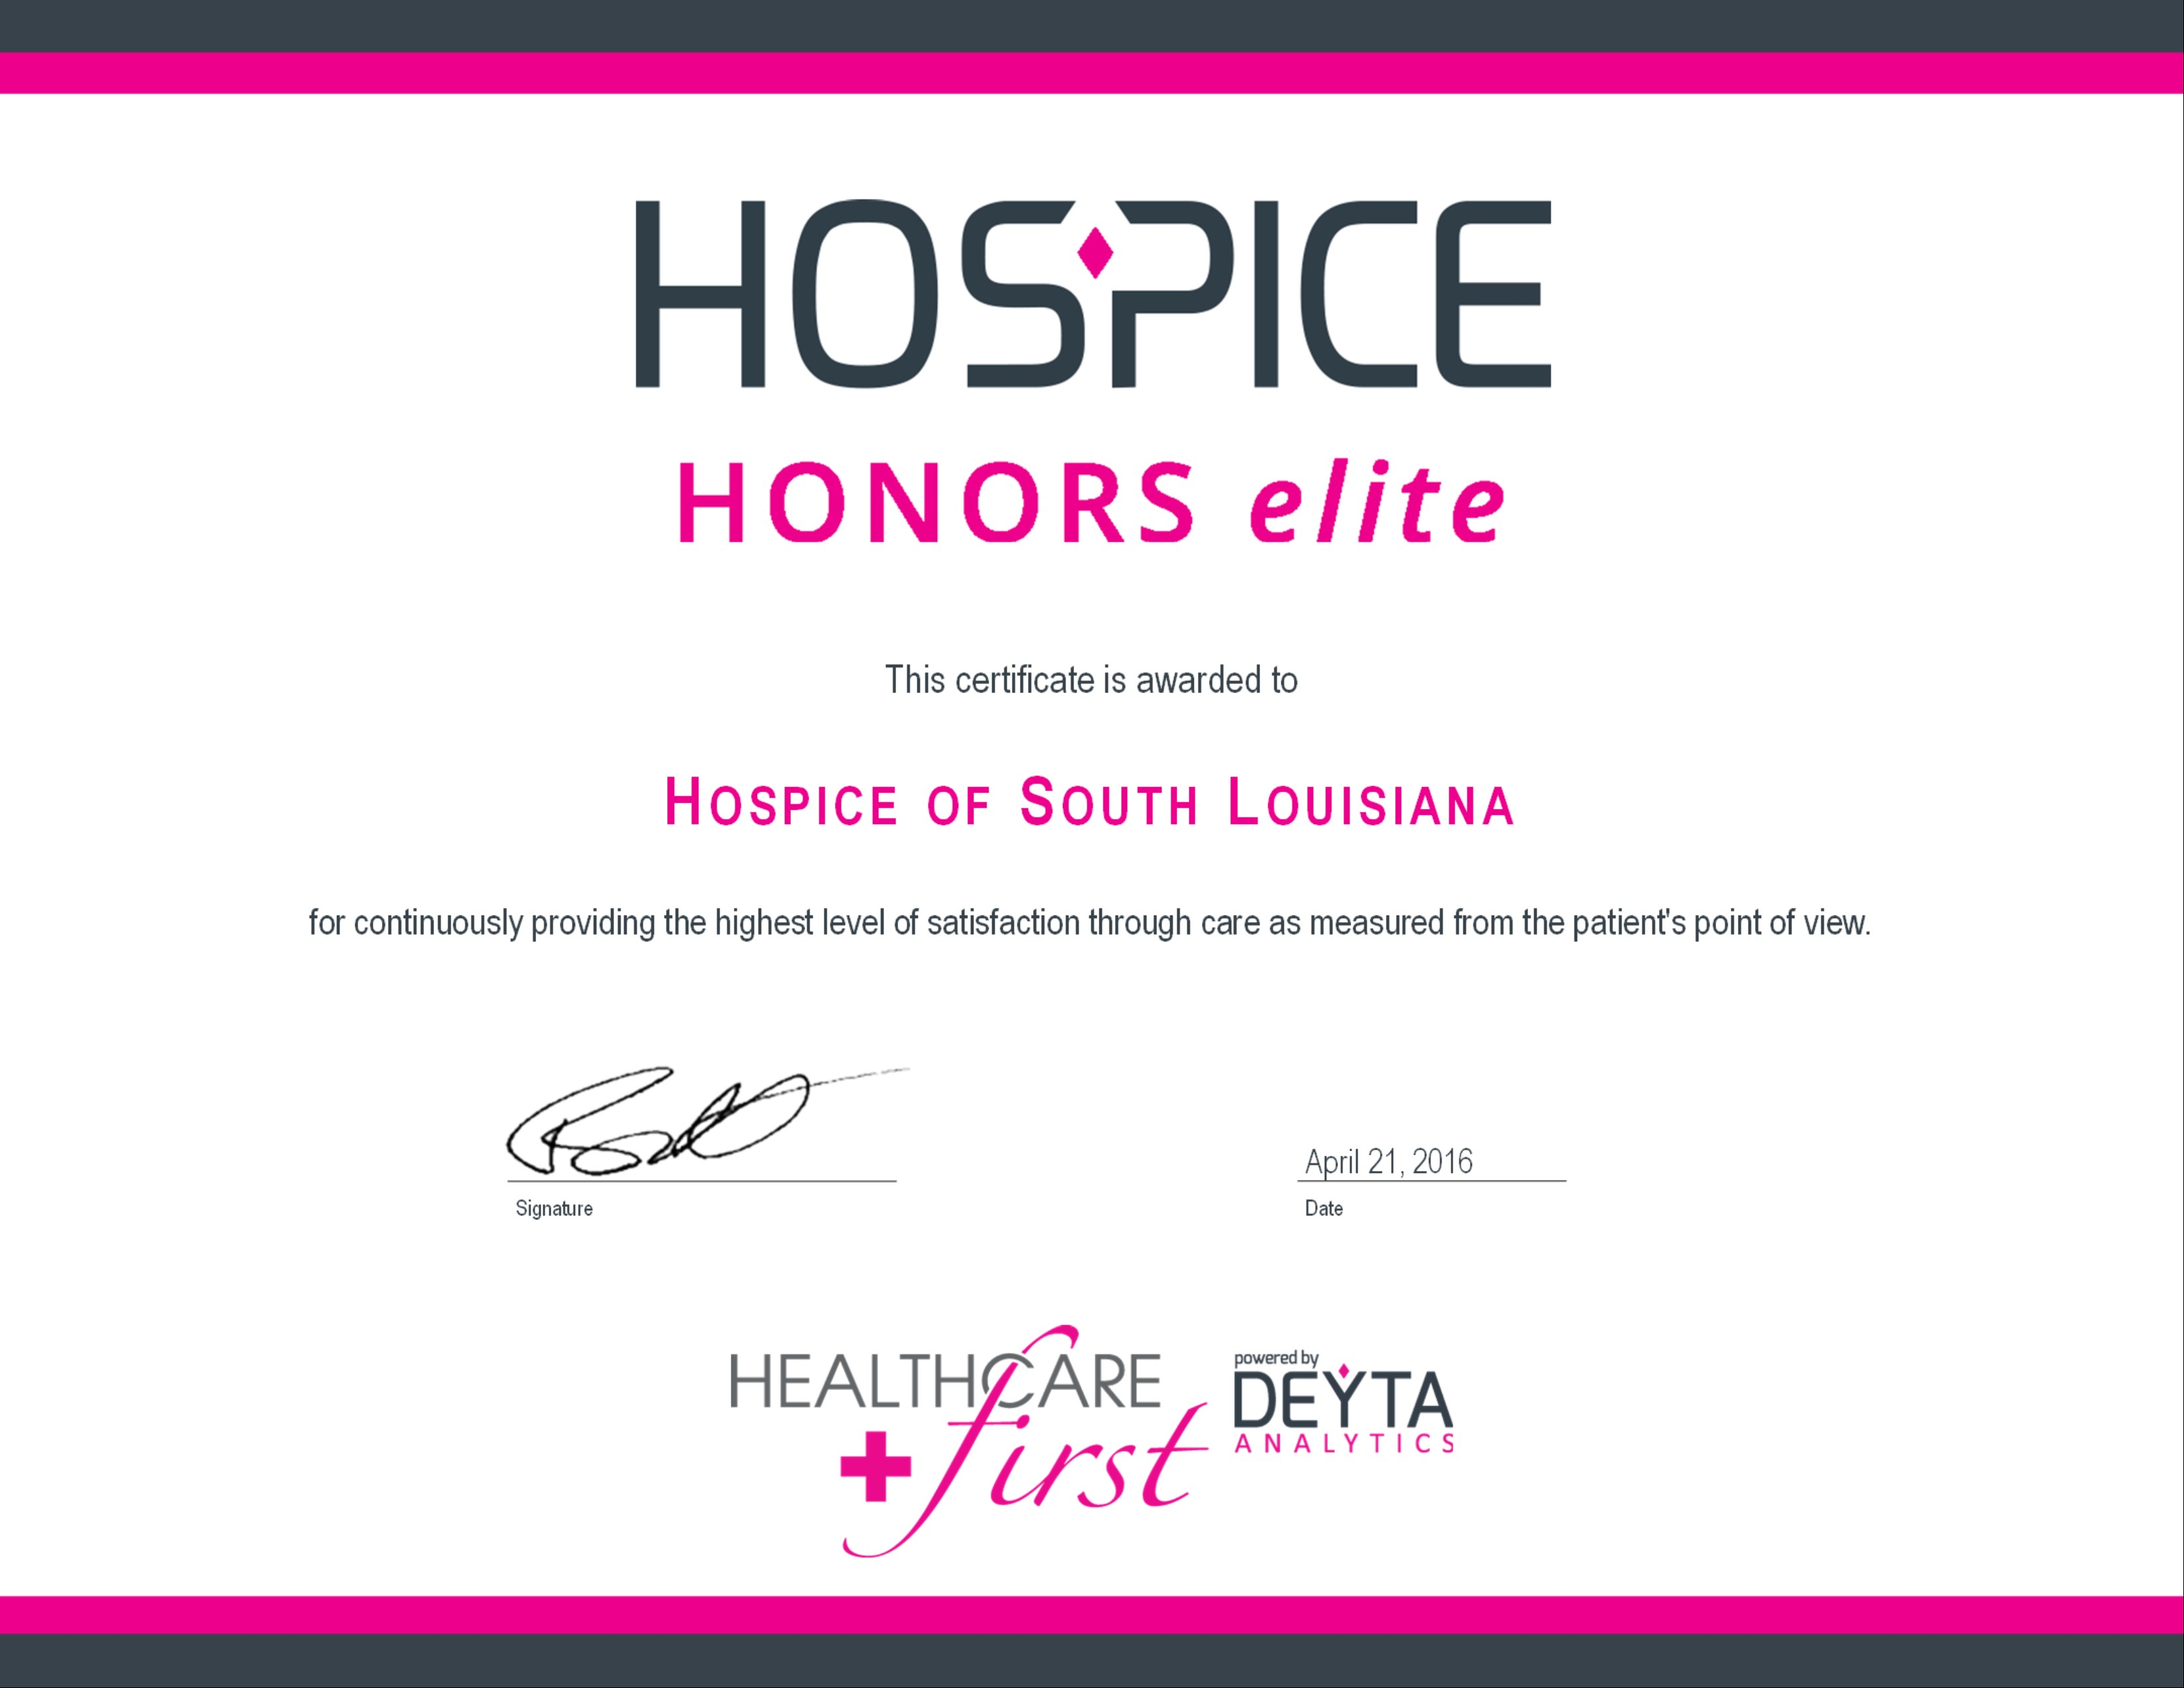 Hospice of South Louisiana named 2016 Hospice Honors Recipient